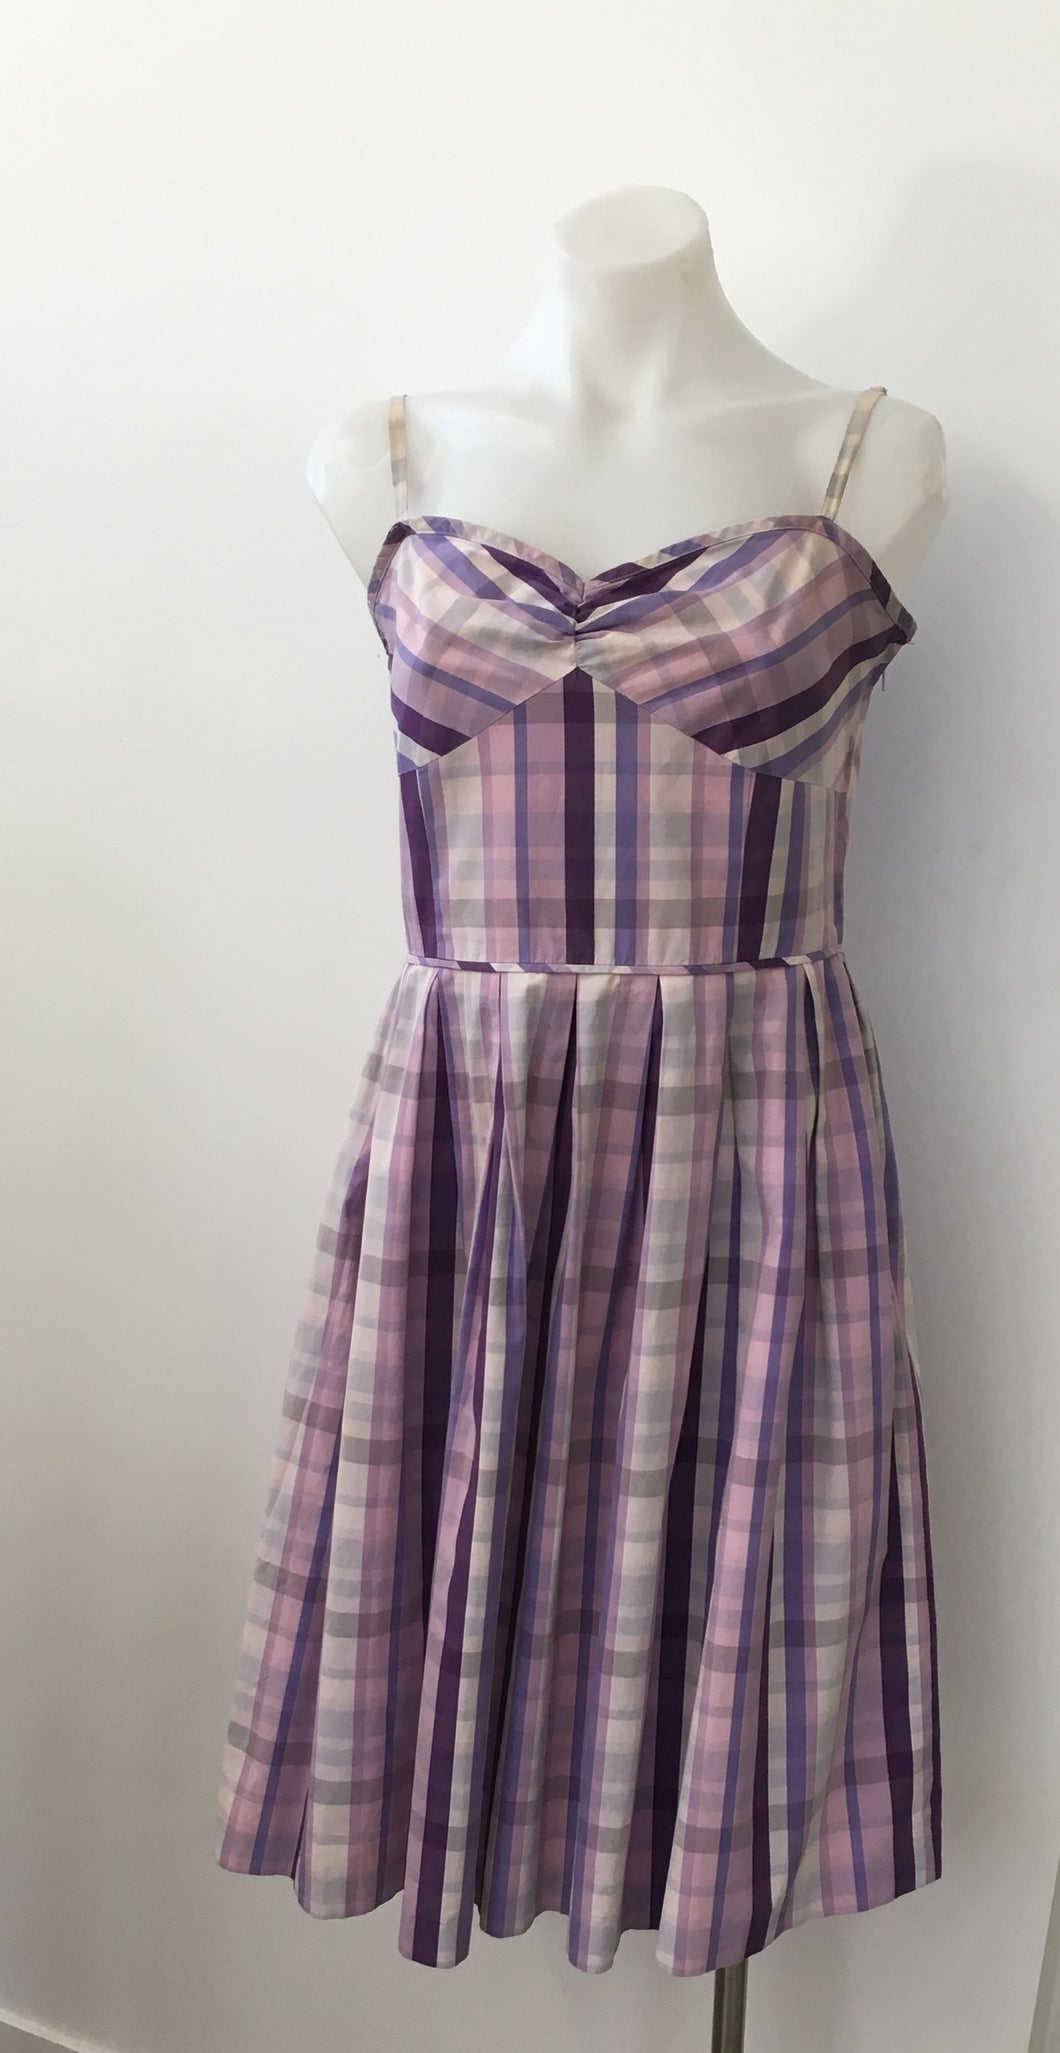 Purple Gingham Dress - Anne Taylor Loft